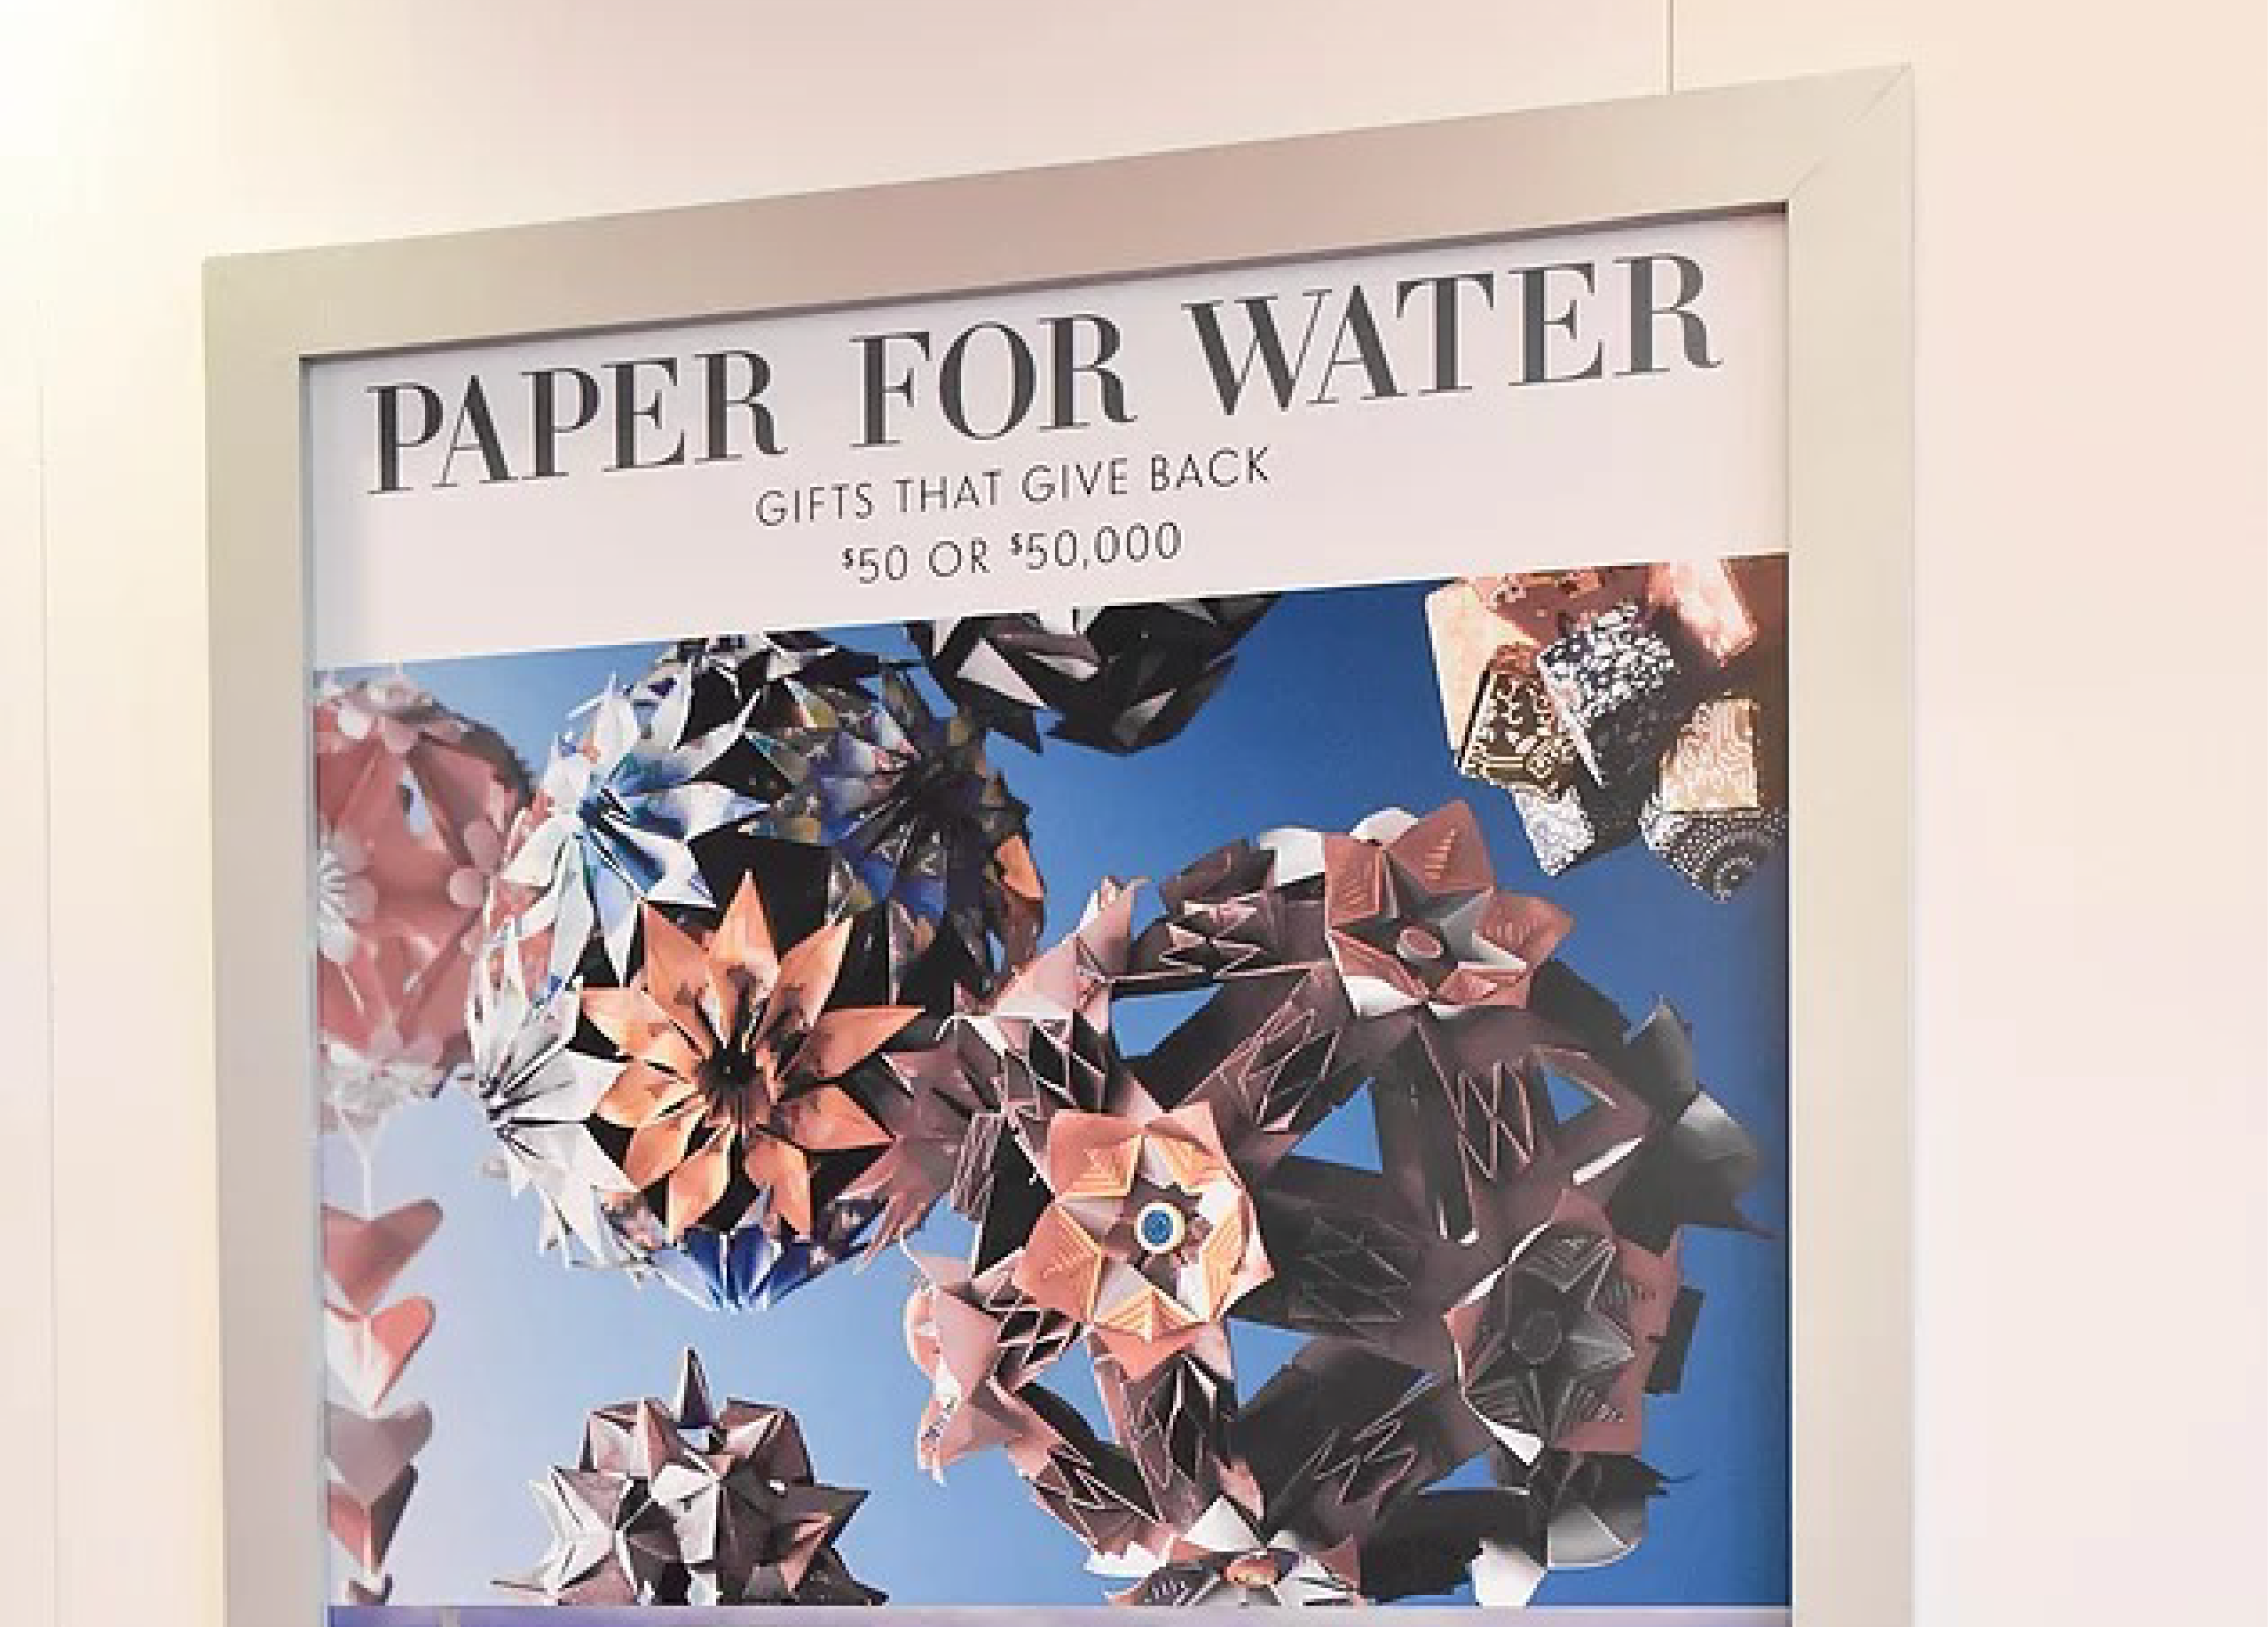 Paper for water neiman marcus 2